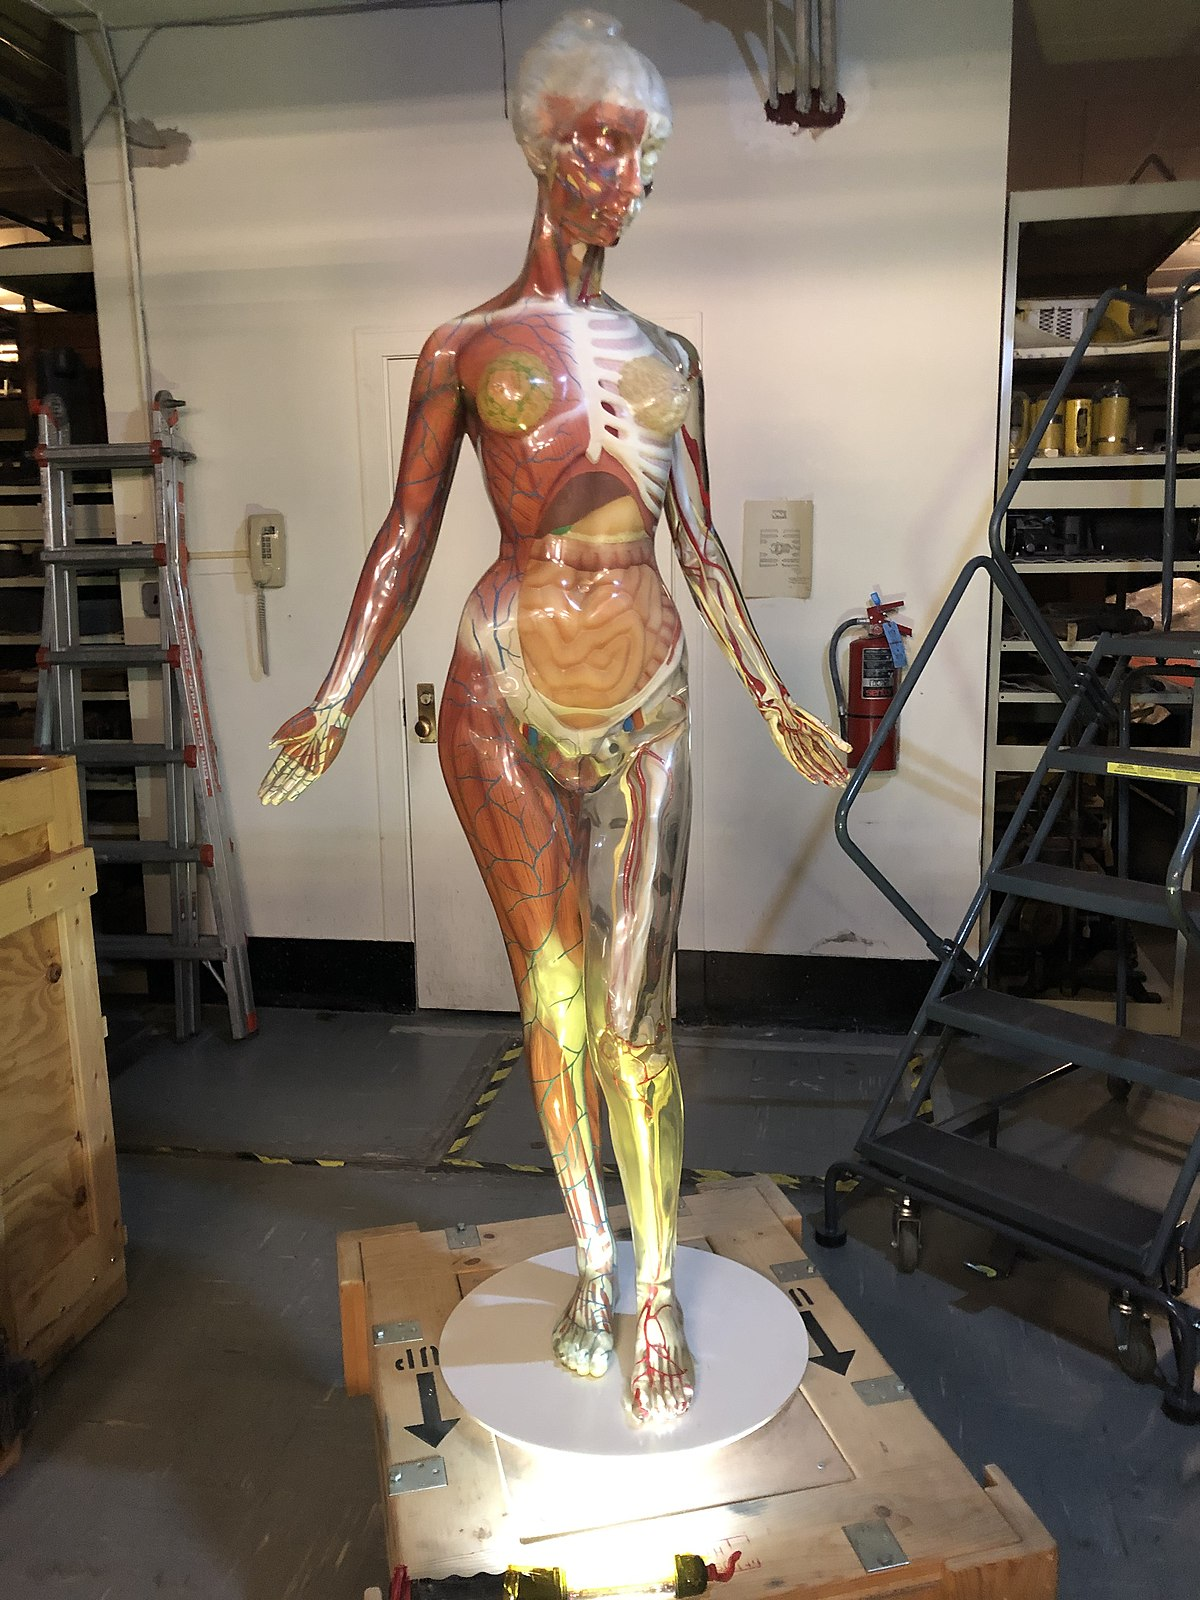 The Transparent Anatomical Manikin (TAM) is a three-dimensional, transparent anatomical model of a human being, created for medical instructional purp